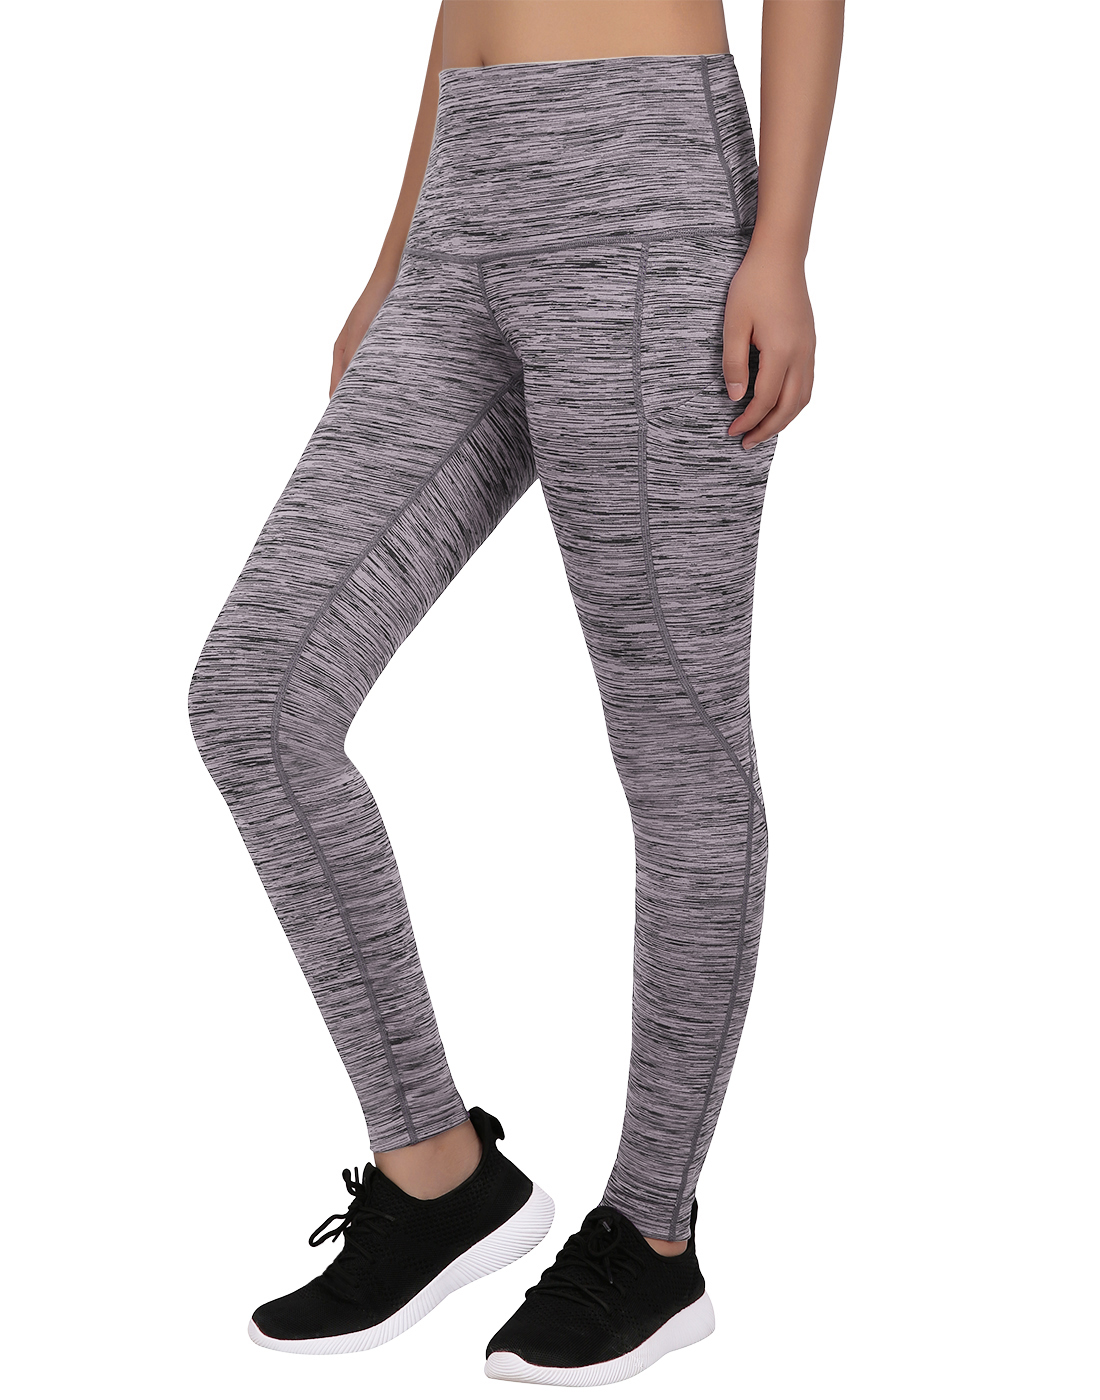 ZZpioneer Yoga Pants for Women Cell Phone Pockets Sports Leggings Casual Tummy Control High Waist Yoga Athletic Pants